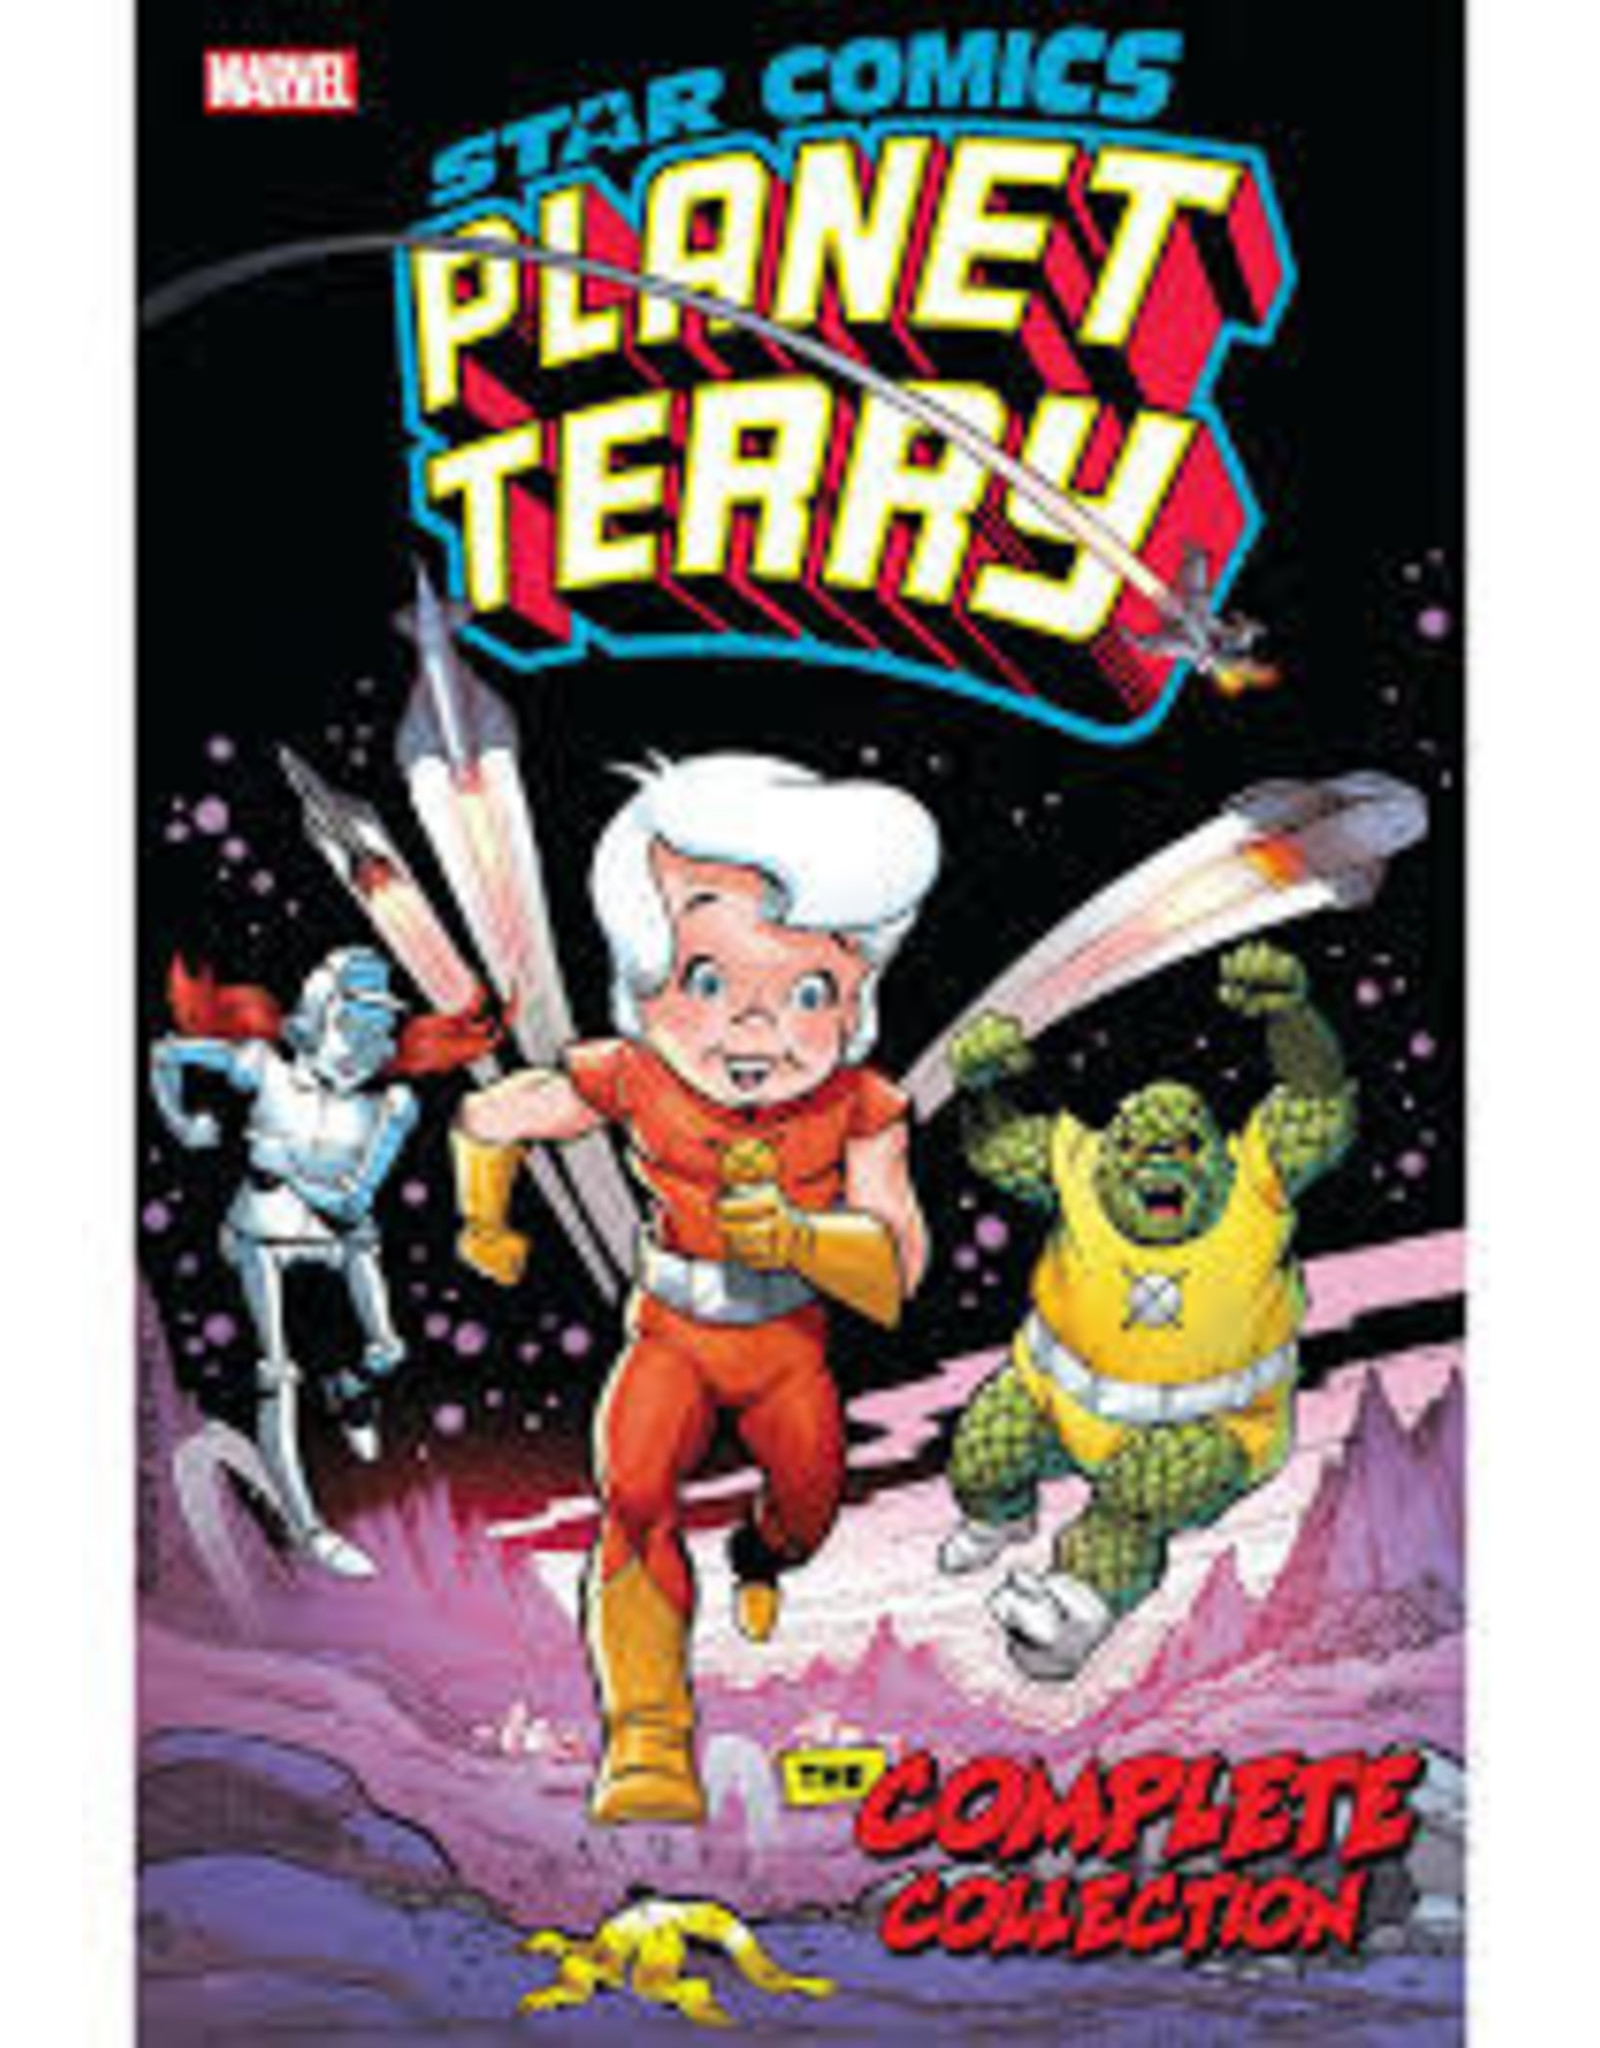 MARVEL COMICS STAR COMICS PLANET TERRY TP COMPLETE COLLECTION